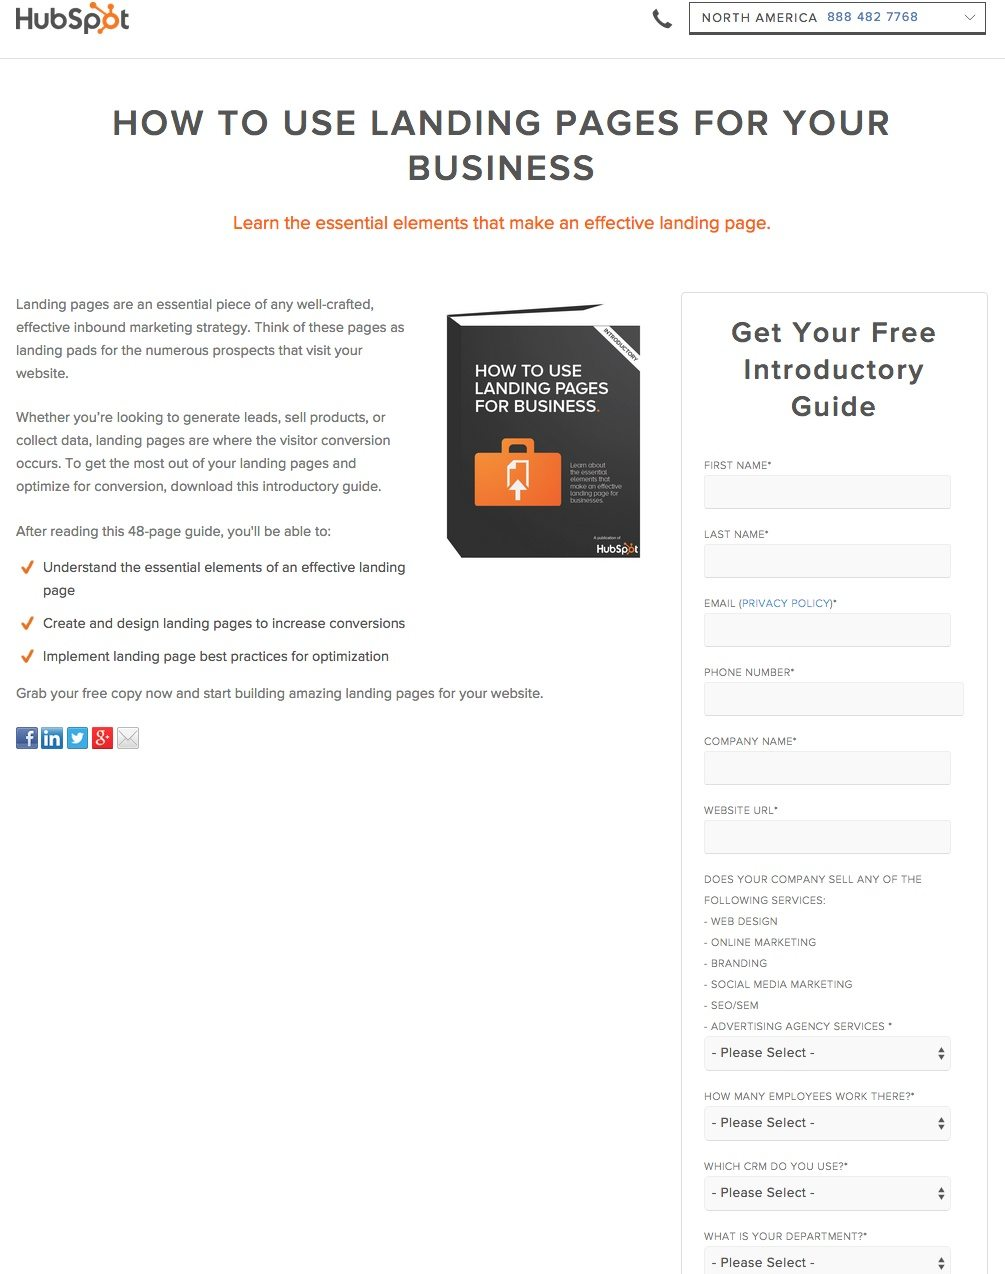 A HubSpot B2B landing page form that uses many fields to capture customer information.